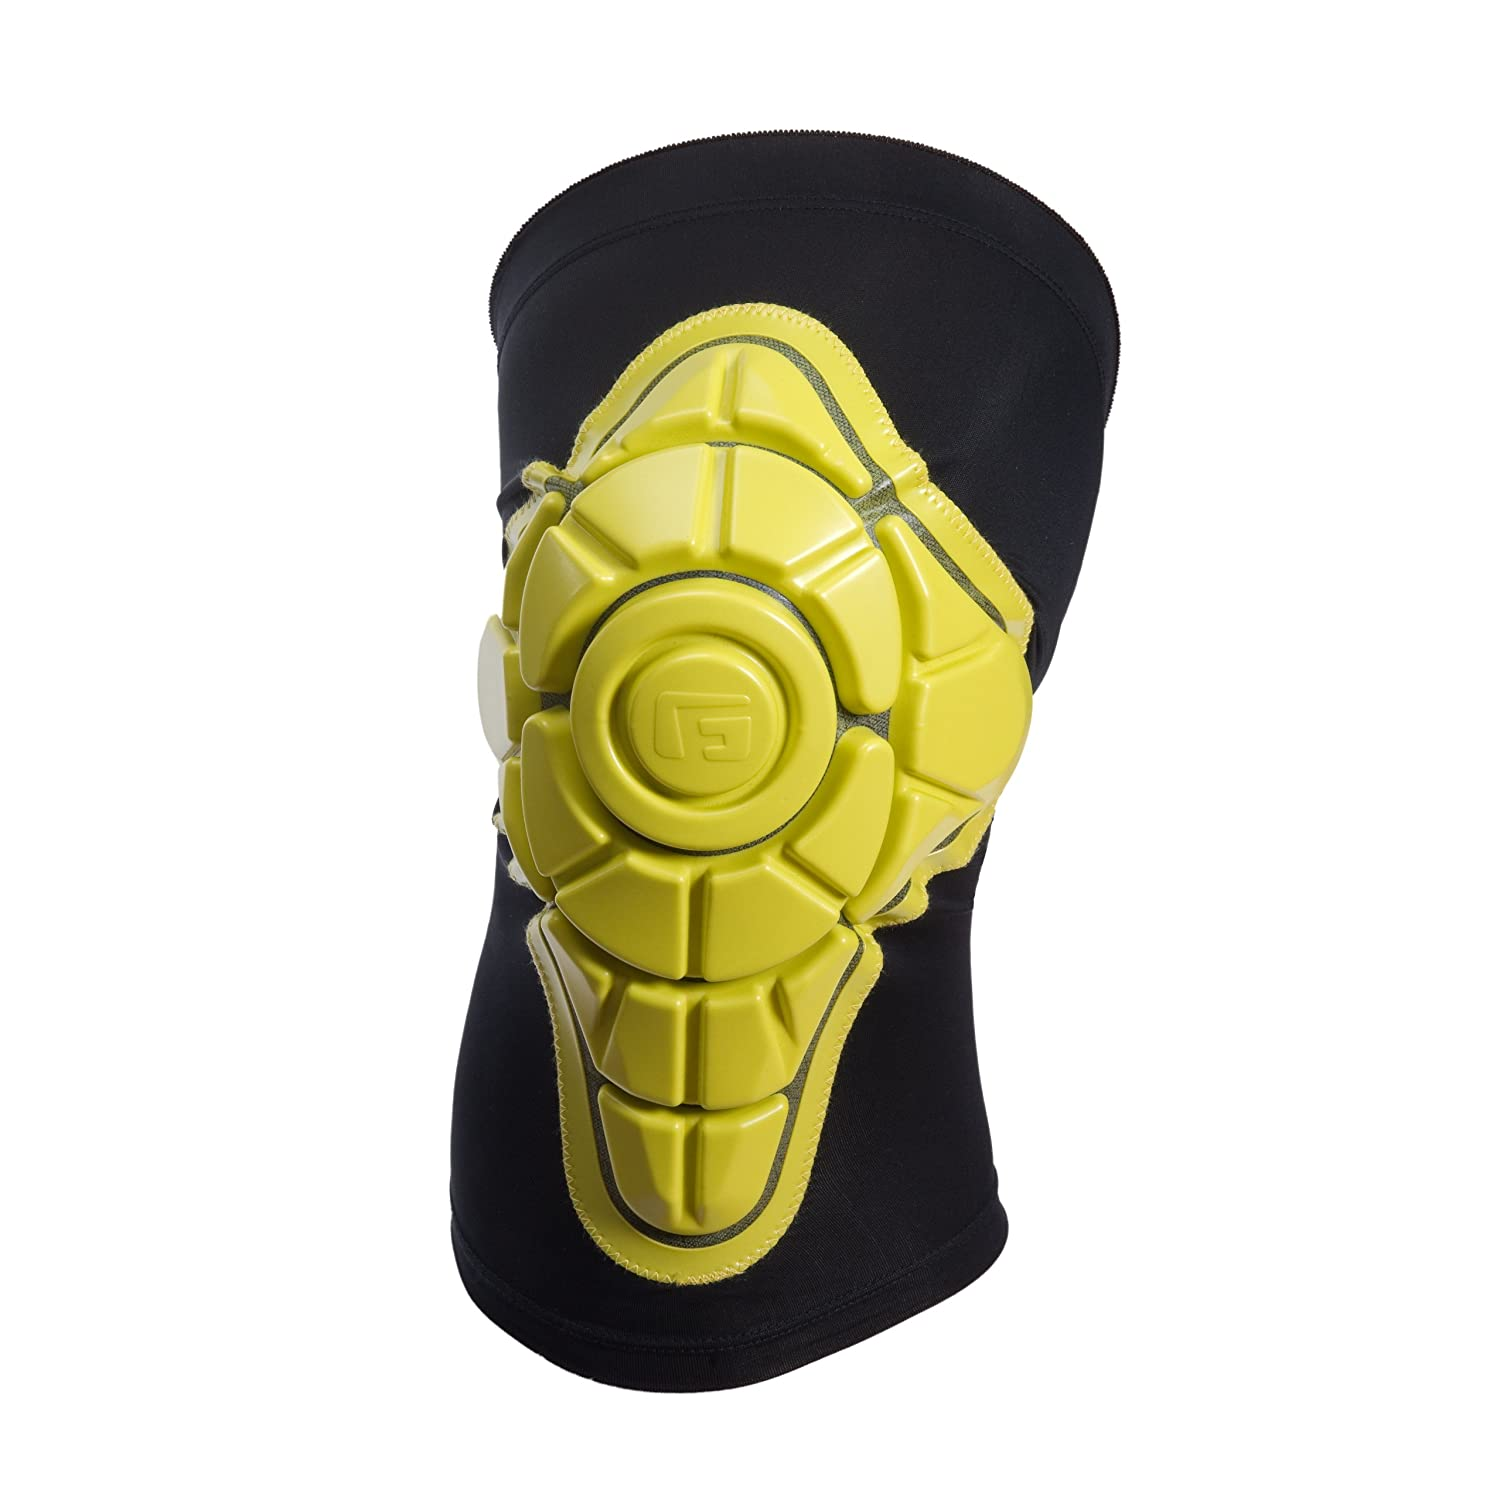 G fORM protections genoux taille xL: Amazon.co.uk: Sports